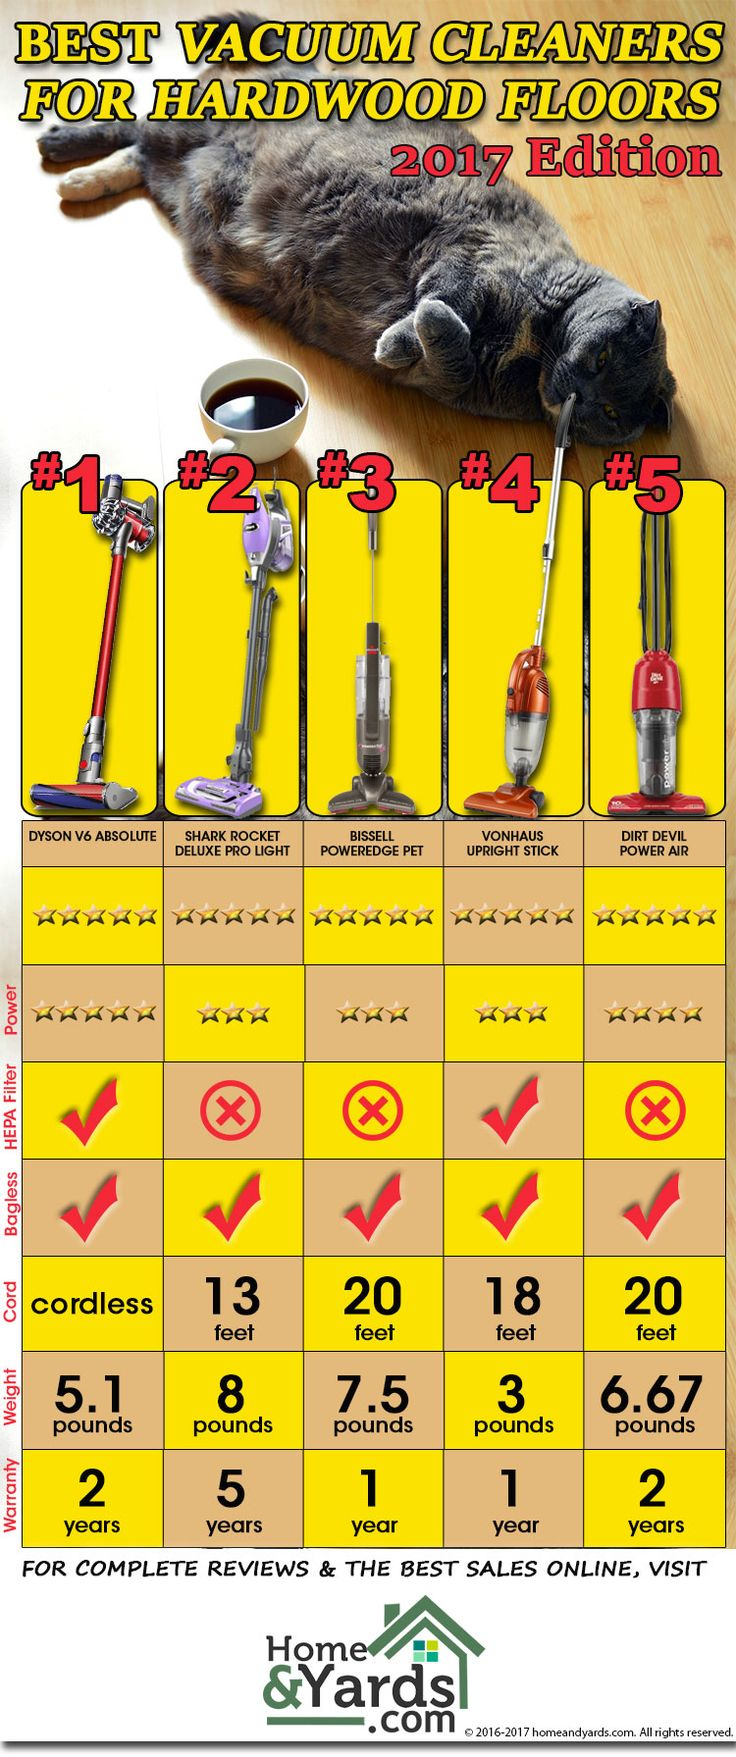 2017 Best Vacuum Cleaners for Hardwood Floors Infographic